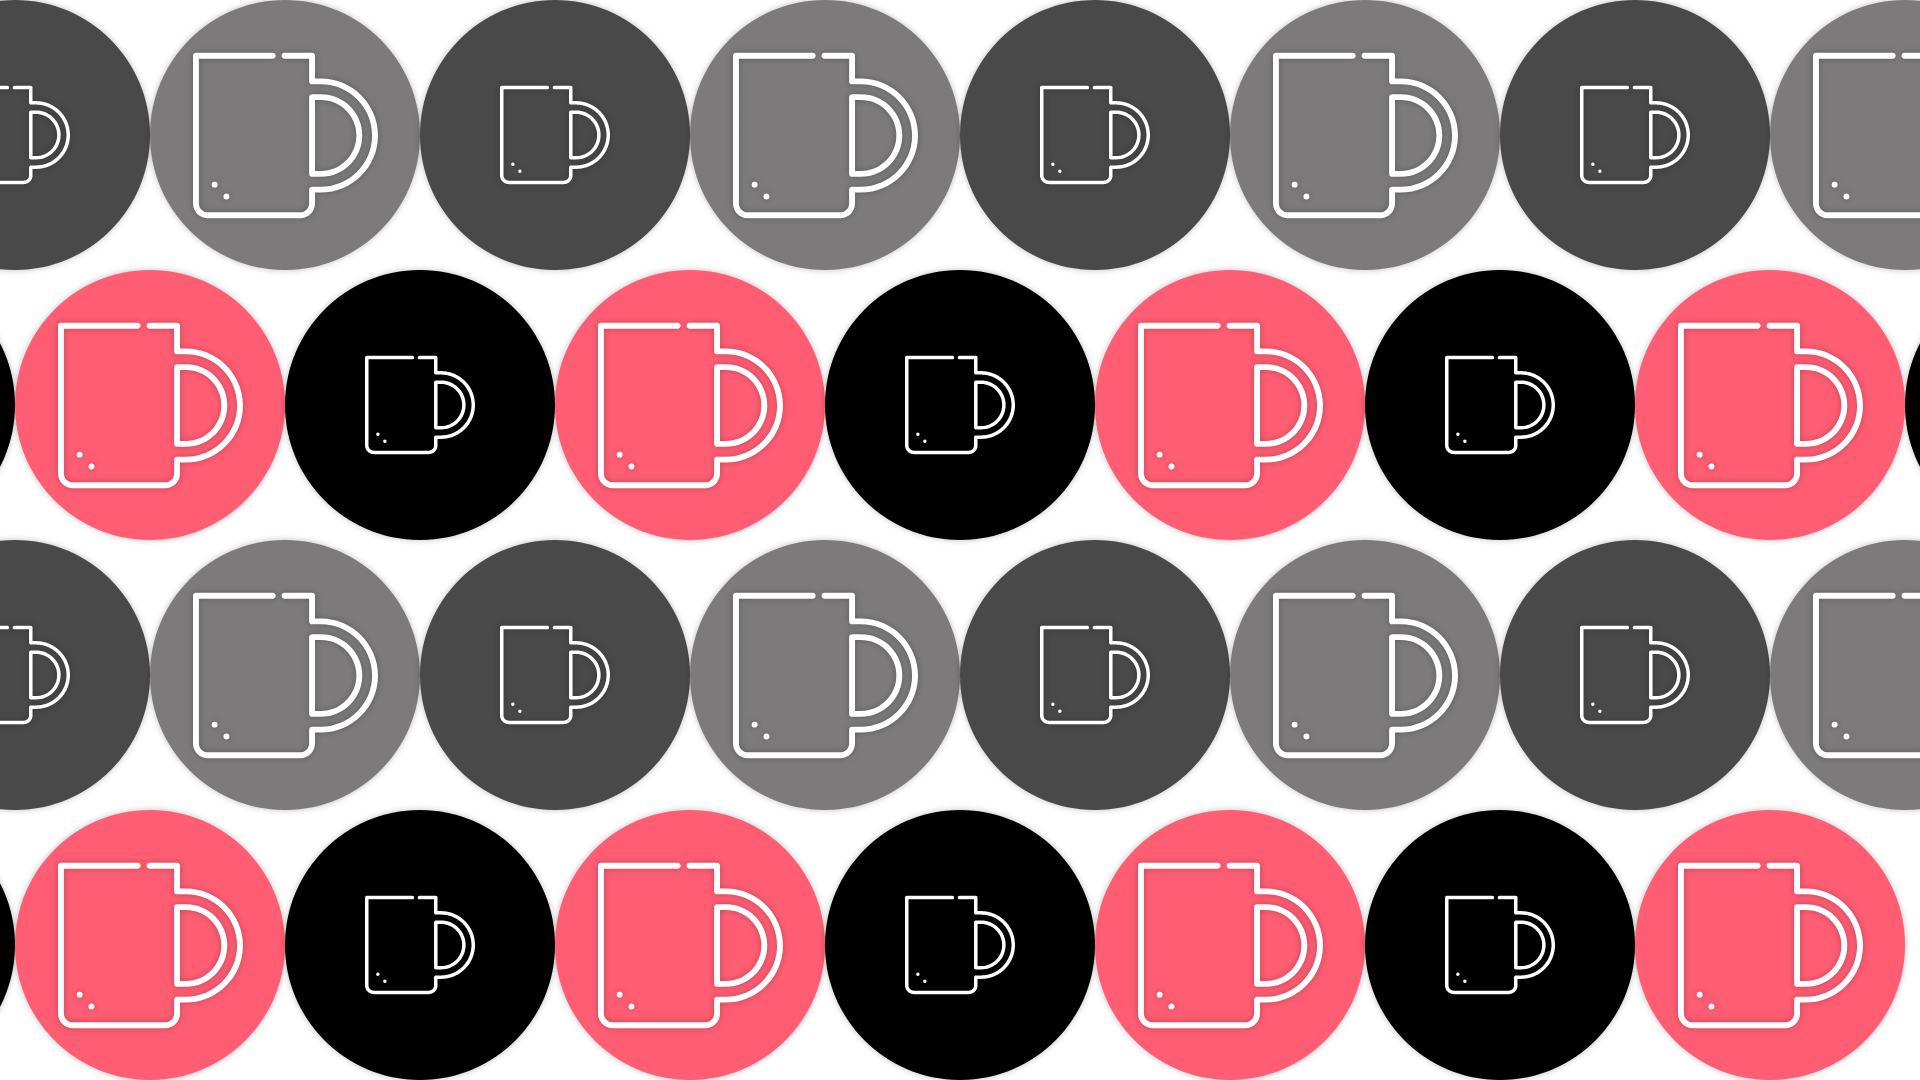 Pink, Text, Font, Pattern, Product, Design, Circle, Line, Graphic, Utensils, Top, Kitchenware, Tools,  Free Image